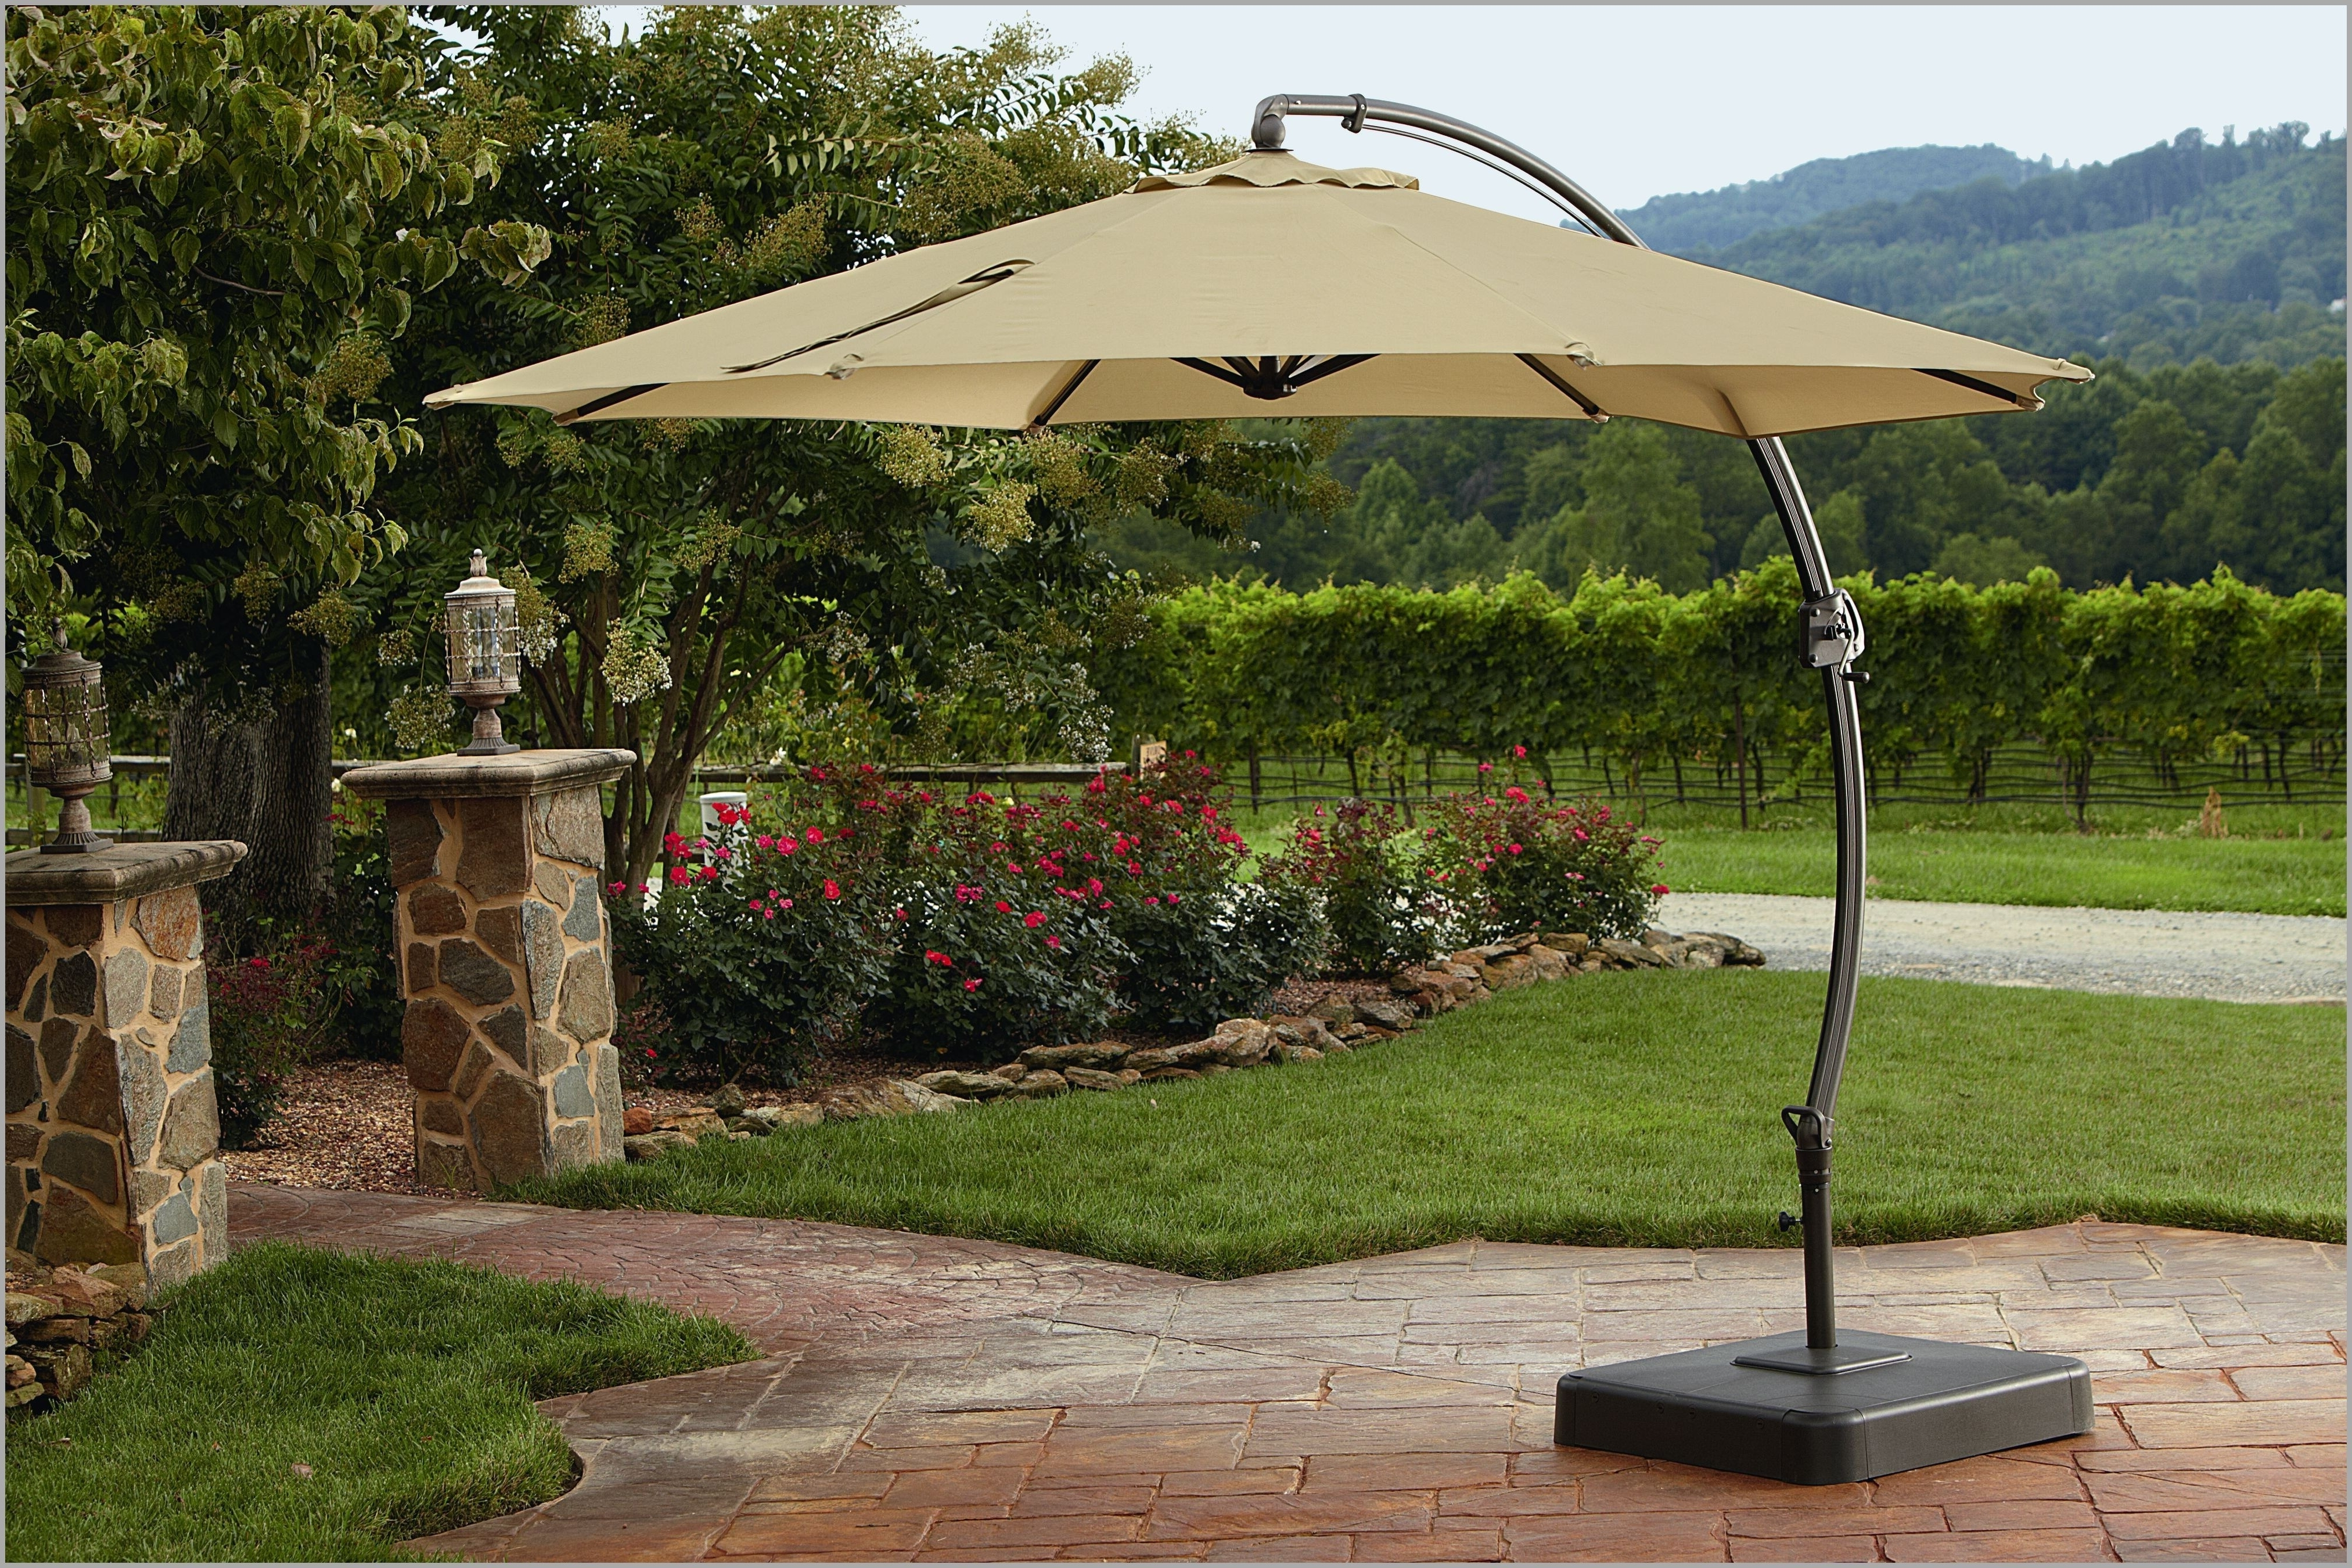 Offset Rectangular Patio Umbrellas Throughout Most Popular Decent Patio Umbrellas Clearance Fset Rectangular Lowes Chairs (View 6 of 20)